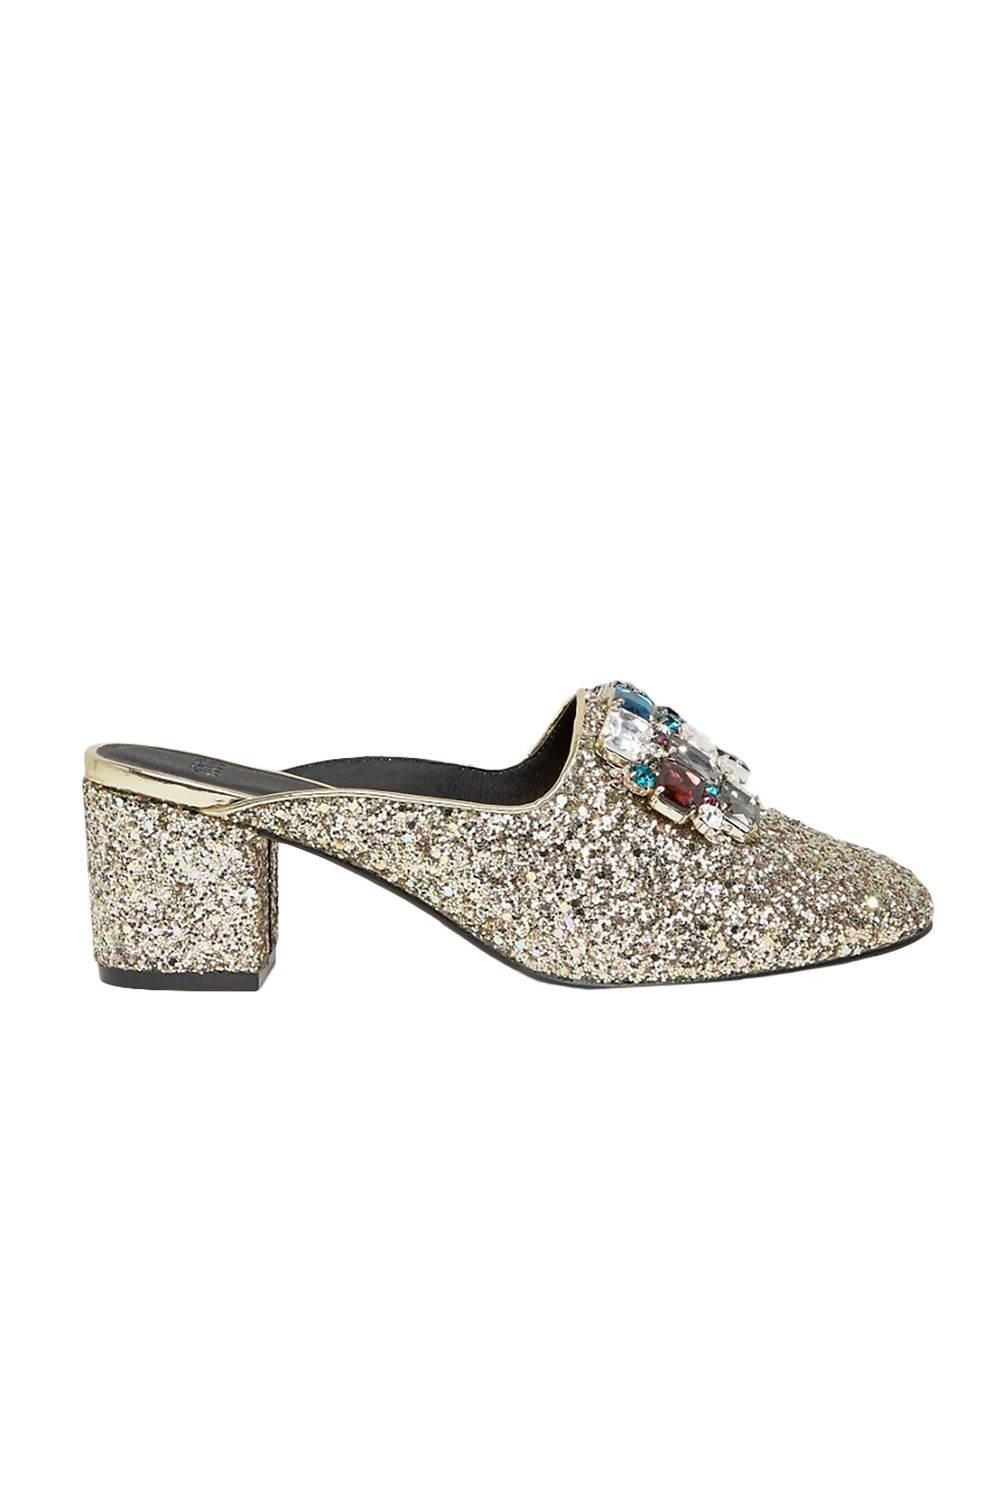 """<p>There's no such thing as too much sparkle, even though this is like Bernini would wear if he'd been around when they invented glitter.</p><p>$65, <a href=""""http://www.asos.com/asos/asos-something-good-embellished-heels/prod/pgeproduct.aspx?iid=6928745&clr=Multiglitter&SearchQuery=&cid=6992&pgesize=36&pge=0&totalstyles=140&gridsize=3&gridrow=7&gridcolumn=3"""" target=""""_blank"""">asos.com</a>.</p>"""